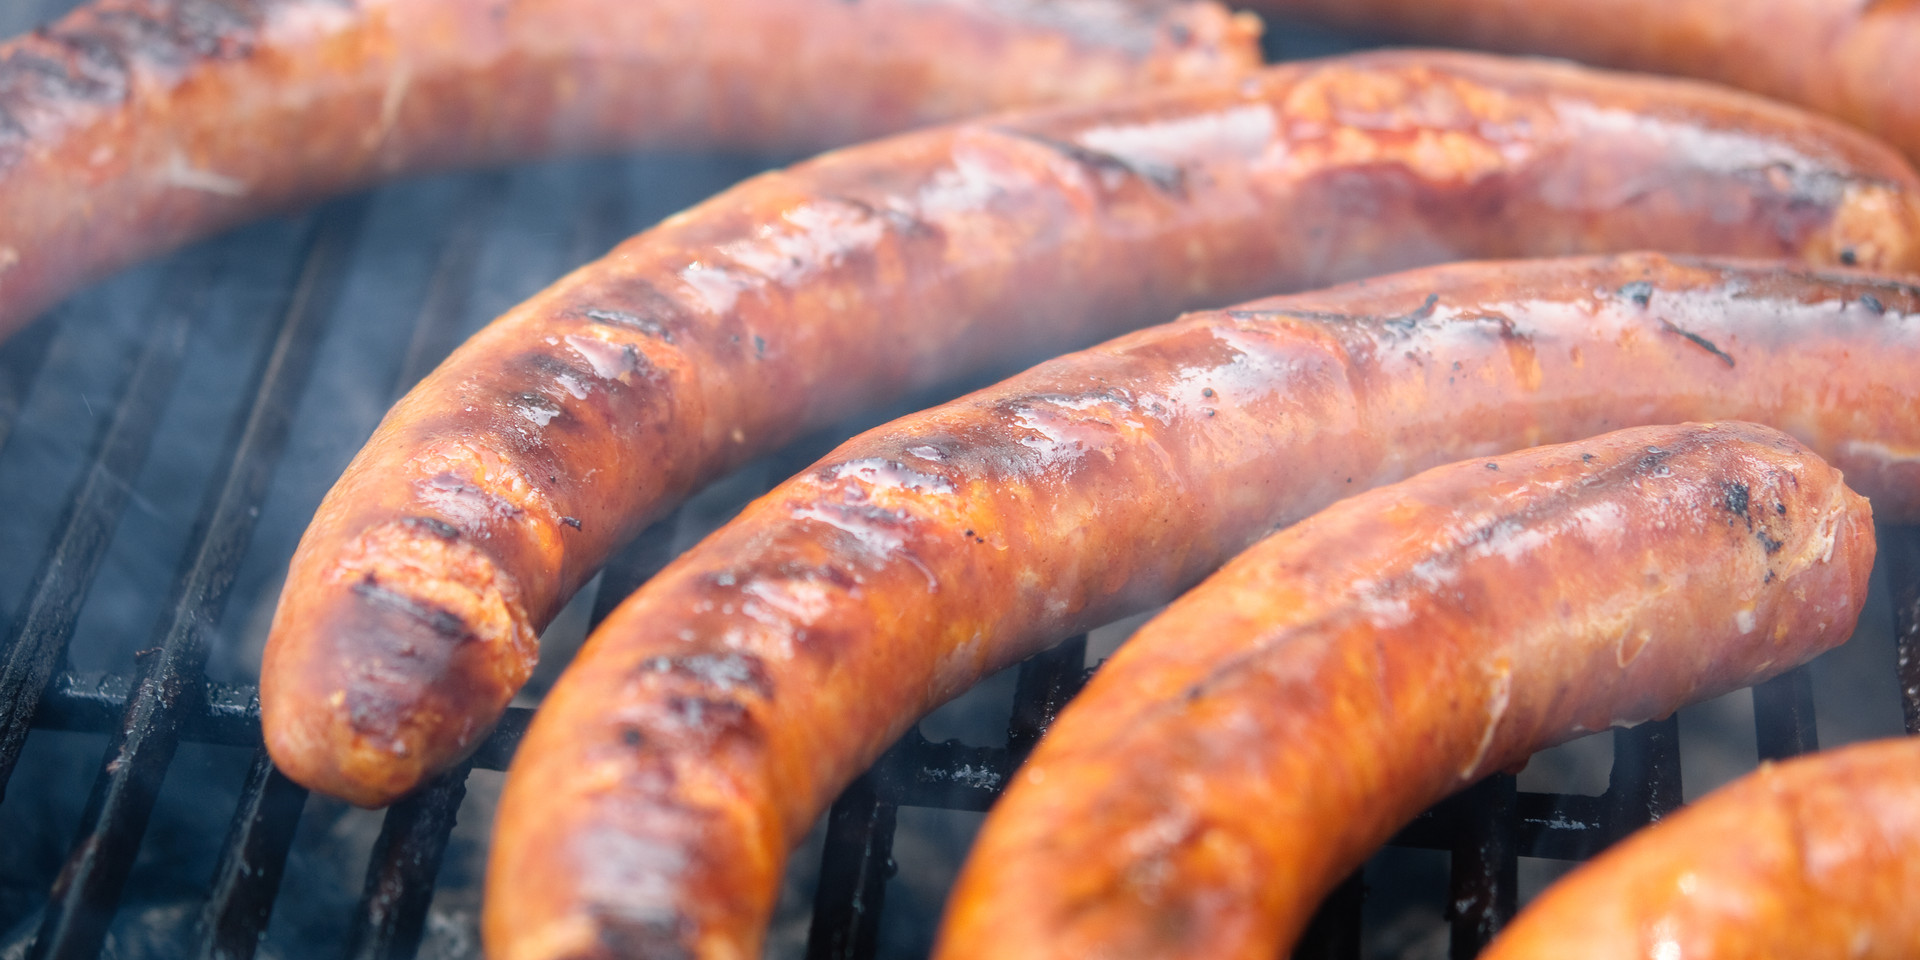 CHARCOAL-GRILLED SAUSAGE